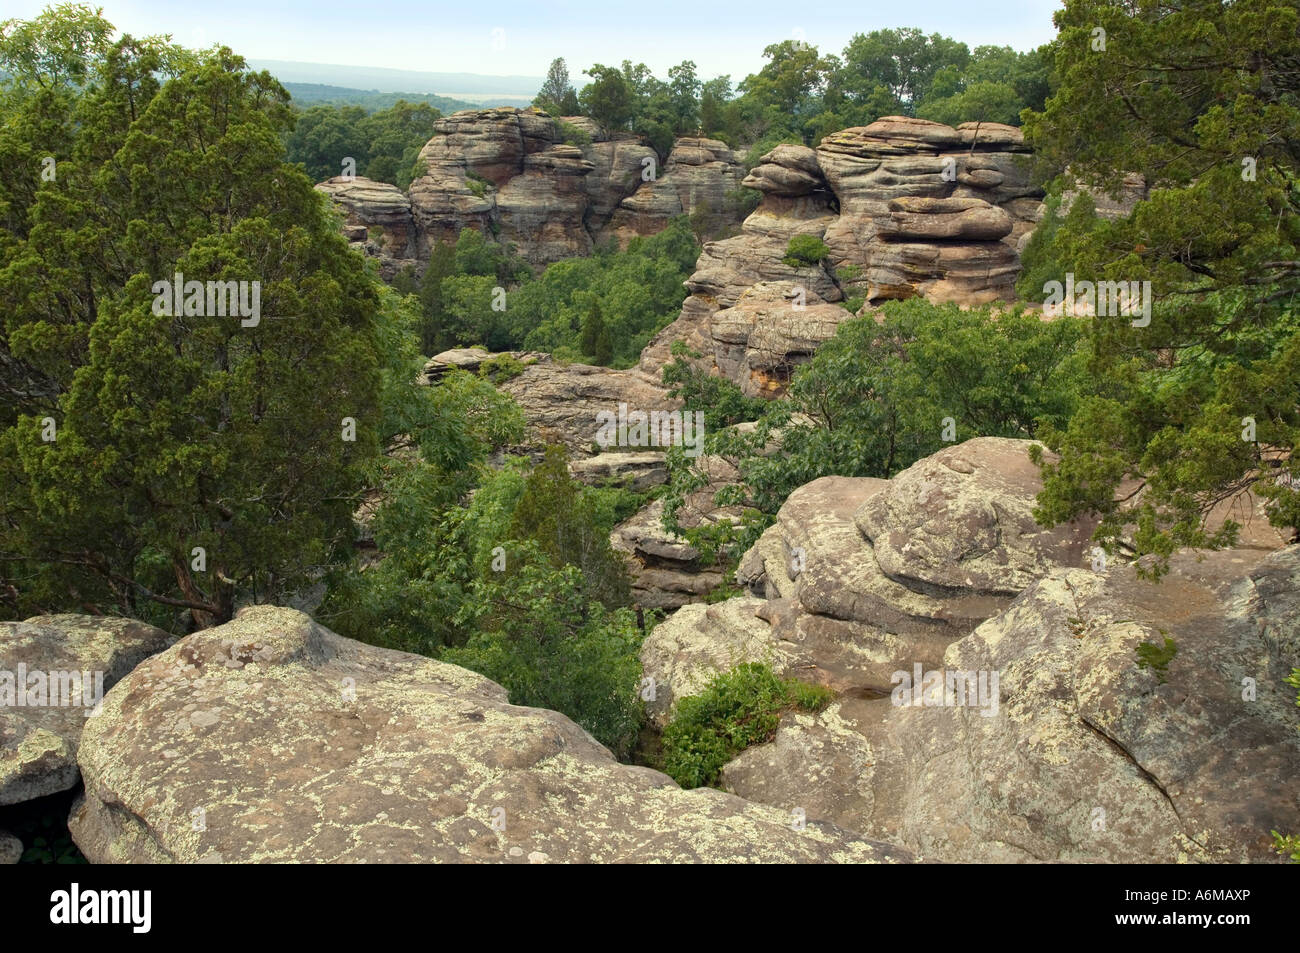 Rock formations at the Garden of the Gods Wilderness Area in the Shawnee National Forest in southern Illinois - Stock Image